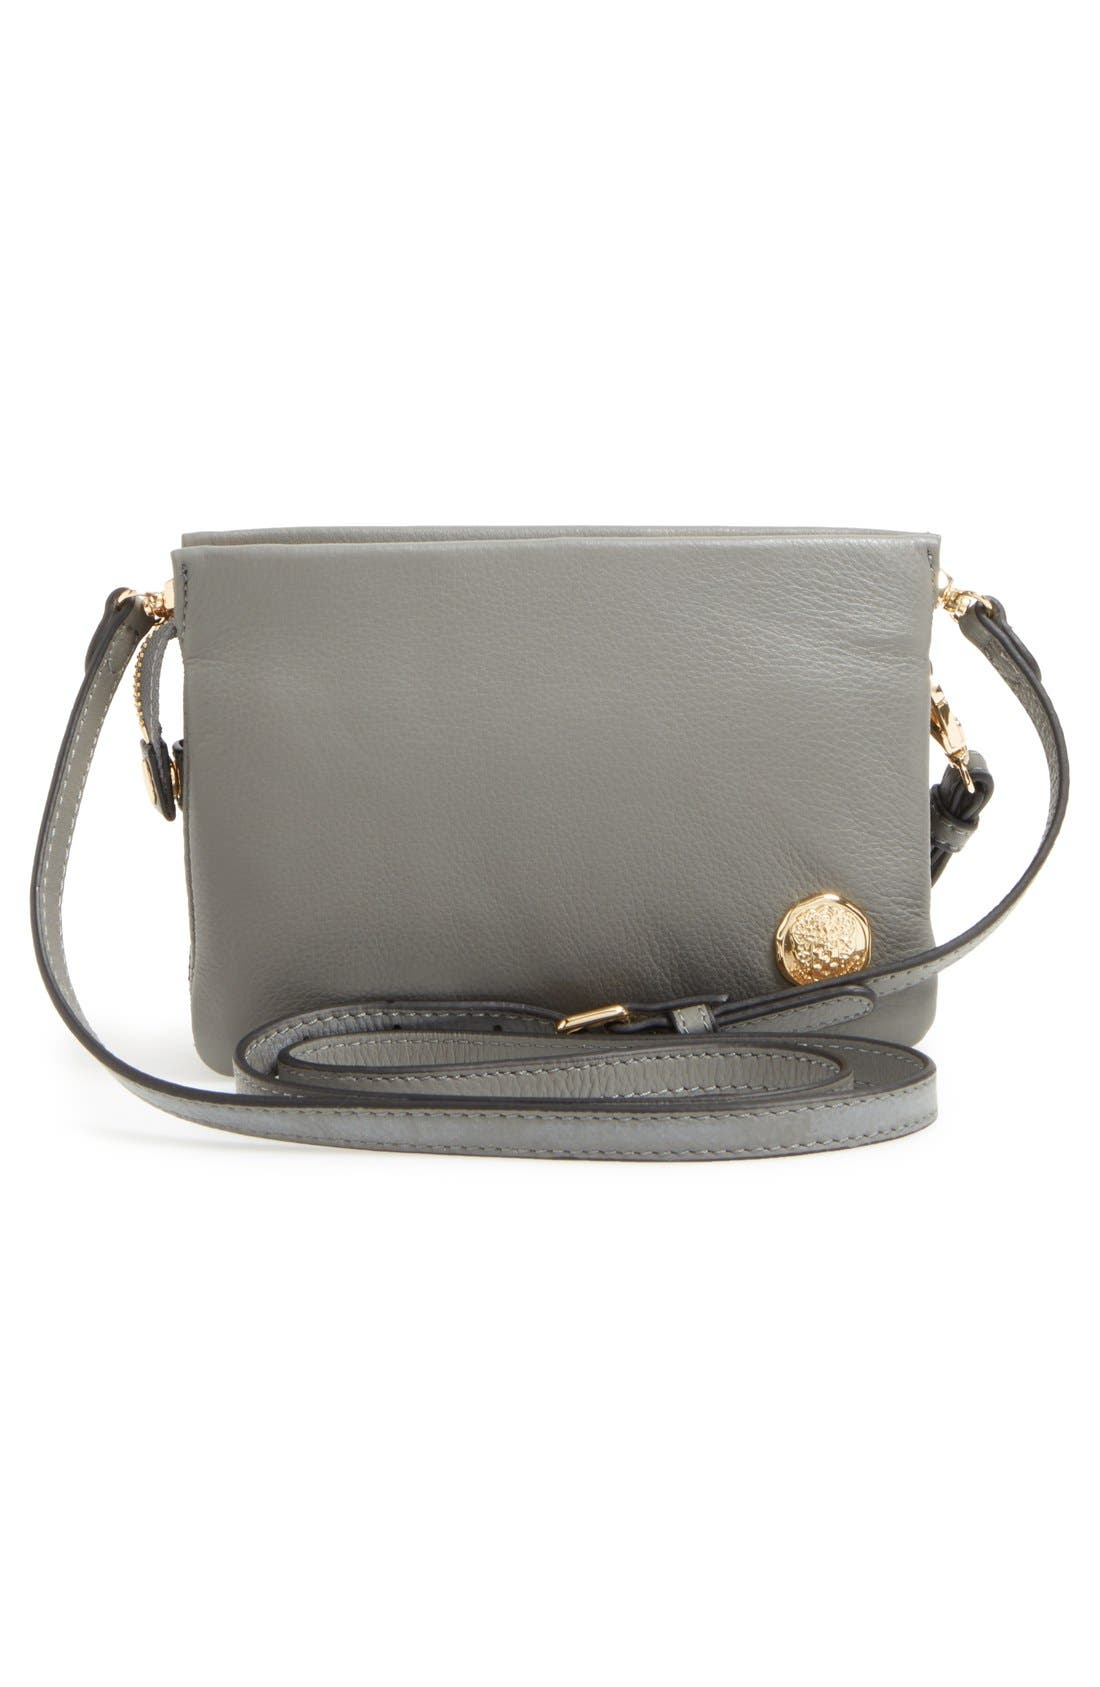 'Cami' Leather Crossbody Bag,                             Alternate thumbnail 72, color,